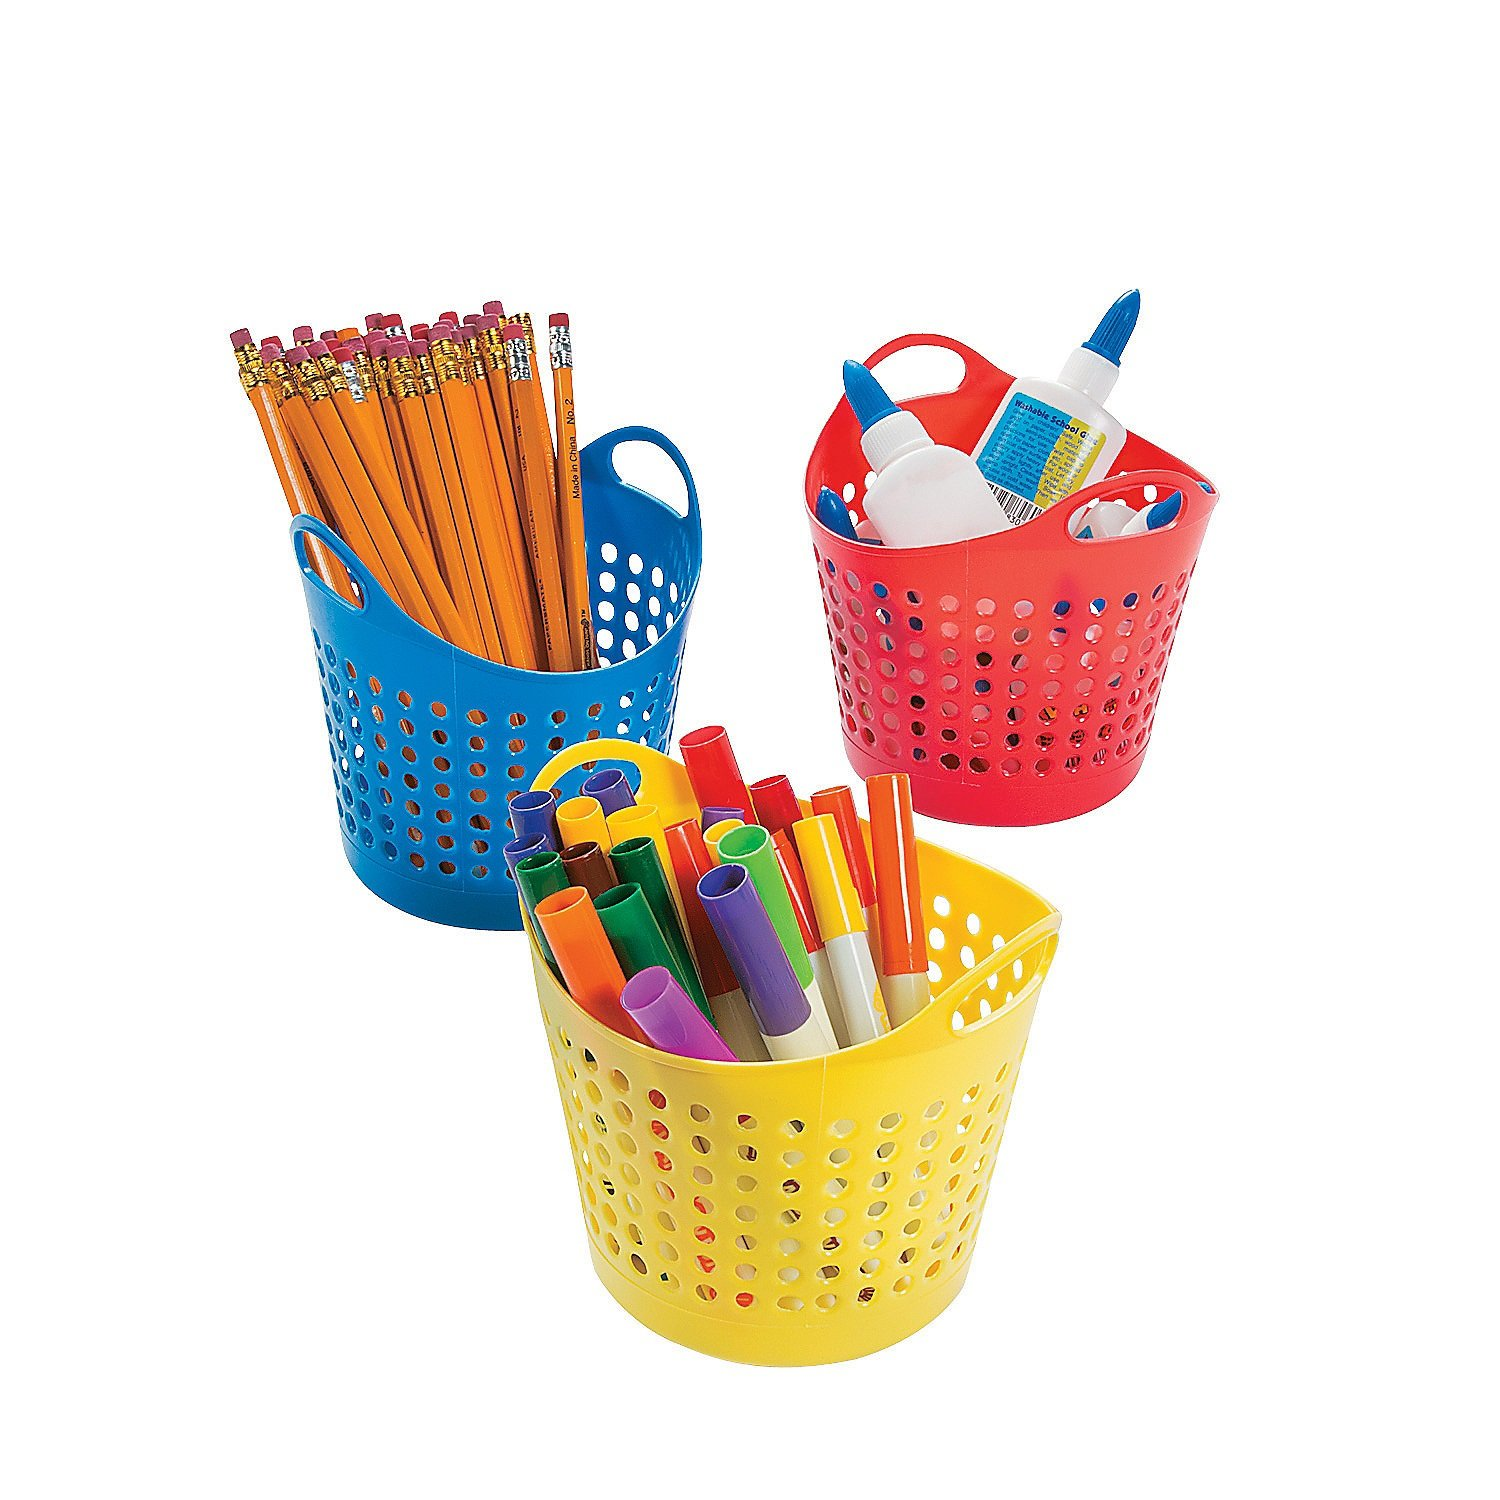 Round Classroom Storage Baskets (12 Pack) 5 1/2'' X 4''. by Fun Express